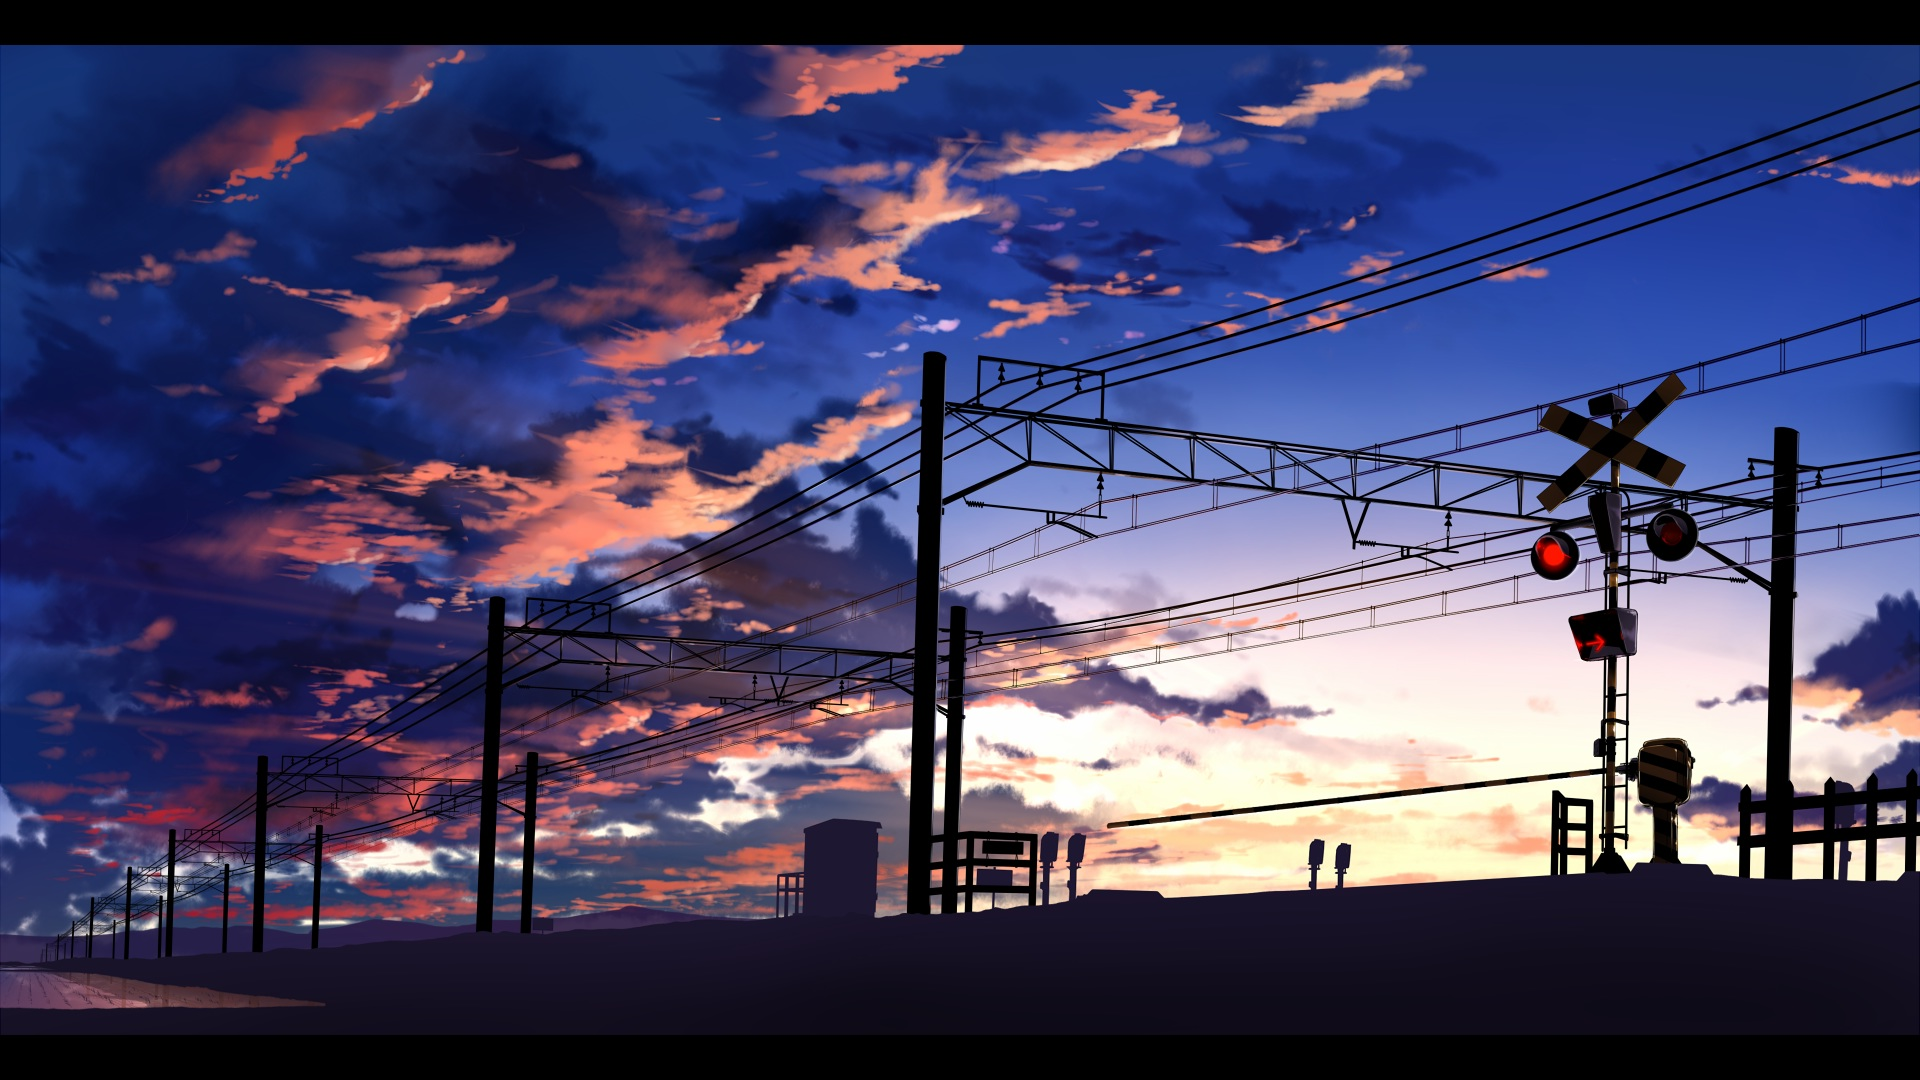 Indian Girl Wallpaper Full Hd Download Anime Train Station Power Lines Clouds Traffic Lights